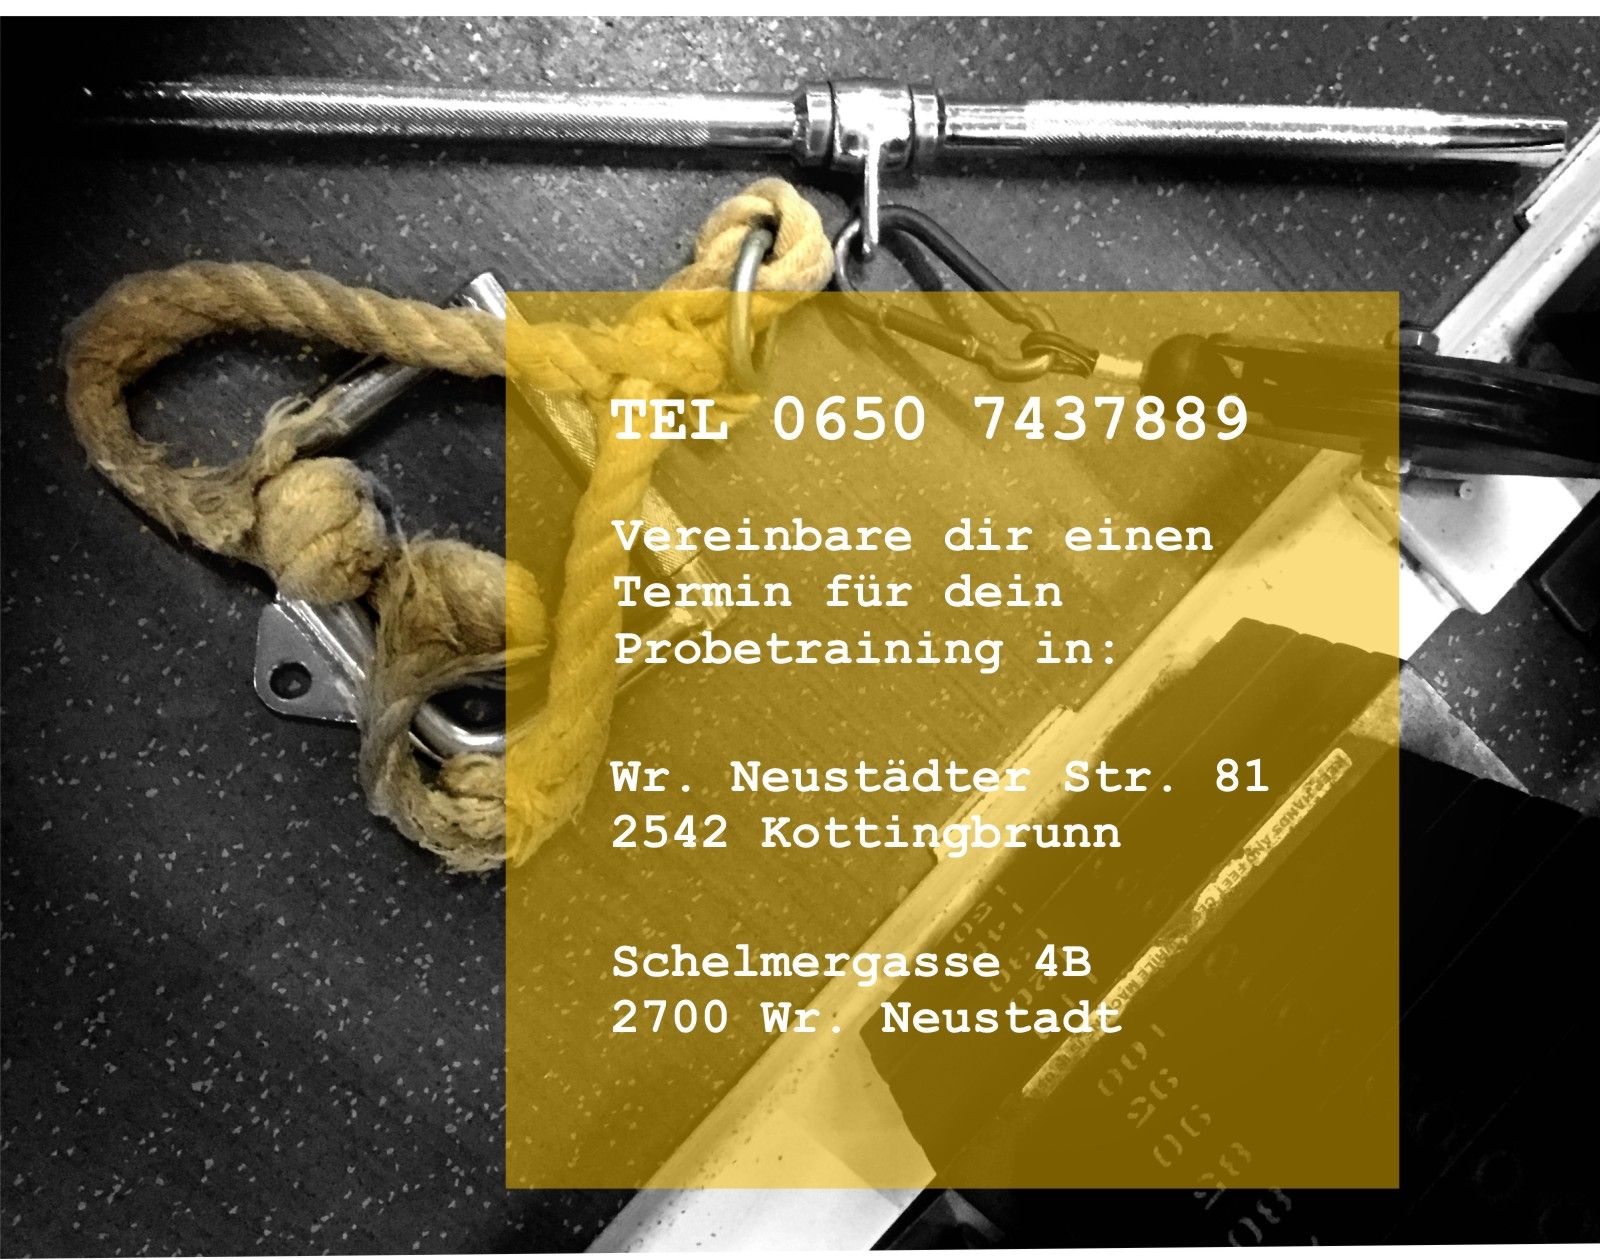 Probetraining Fitnesscenter